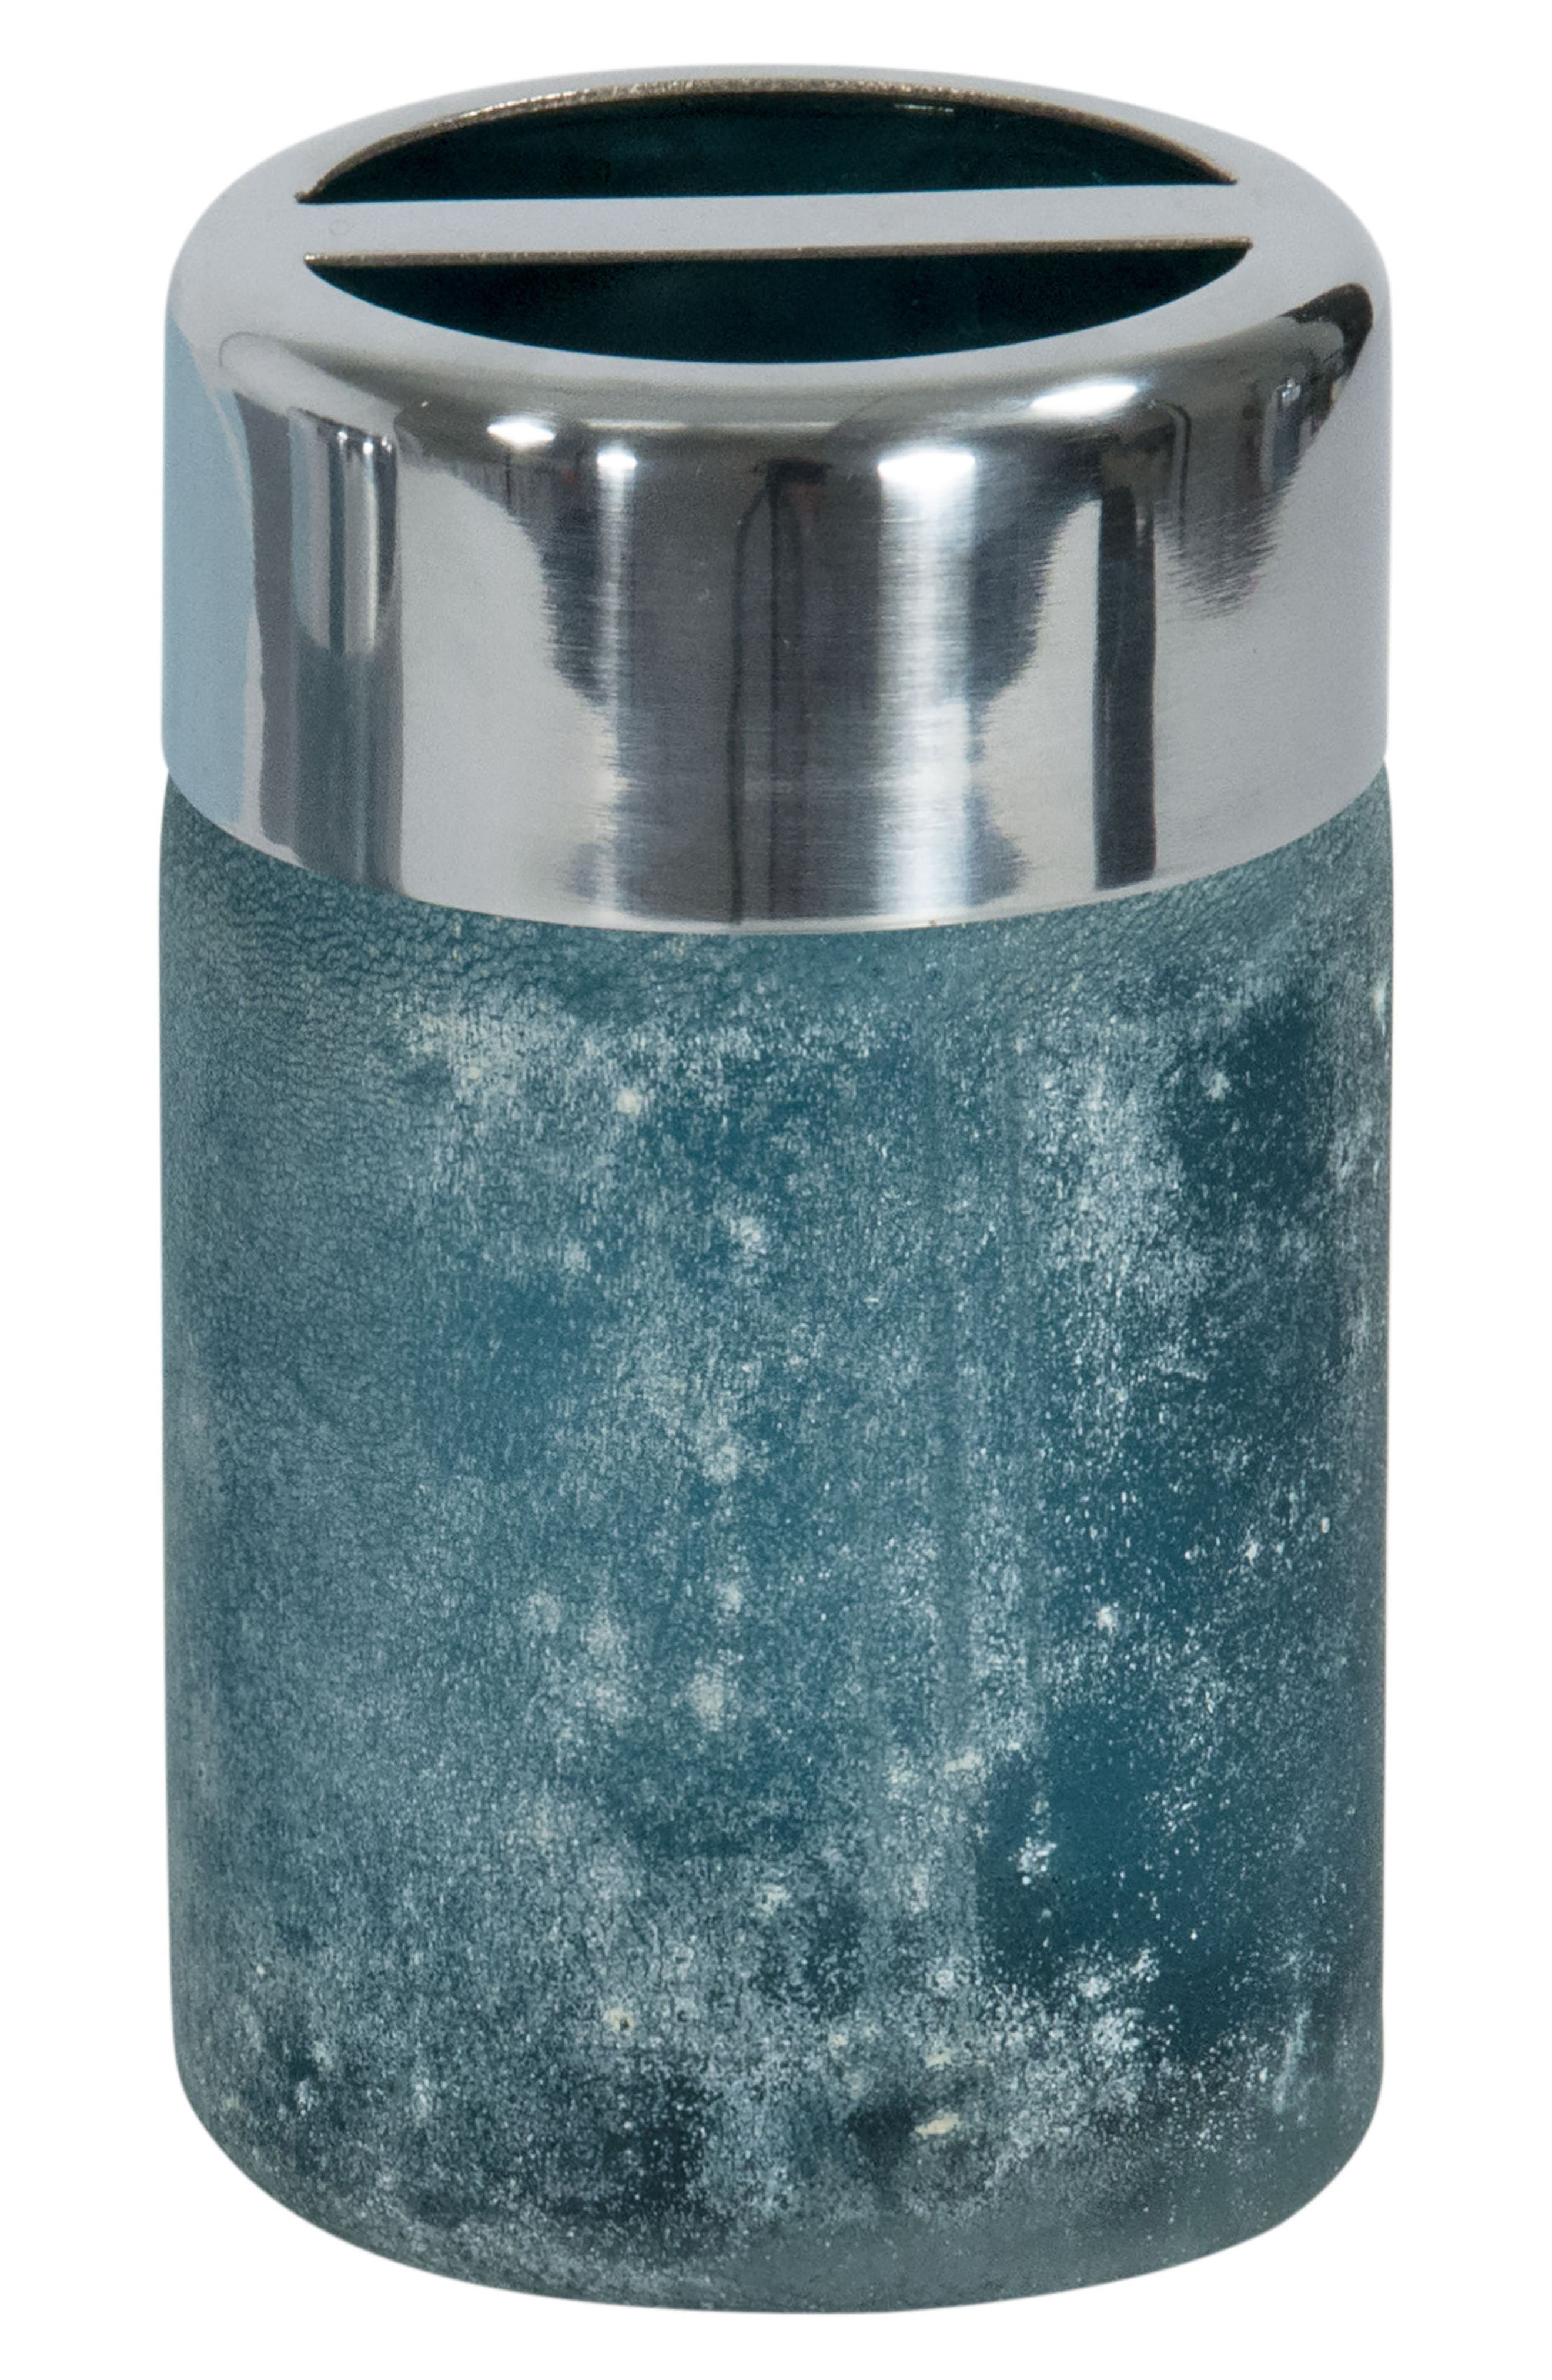 Ocean Reef Toothbrush Holder,                             Main thumbnail 1, color,                             Blue